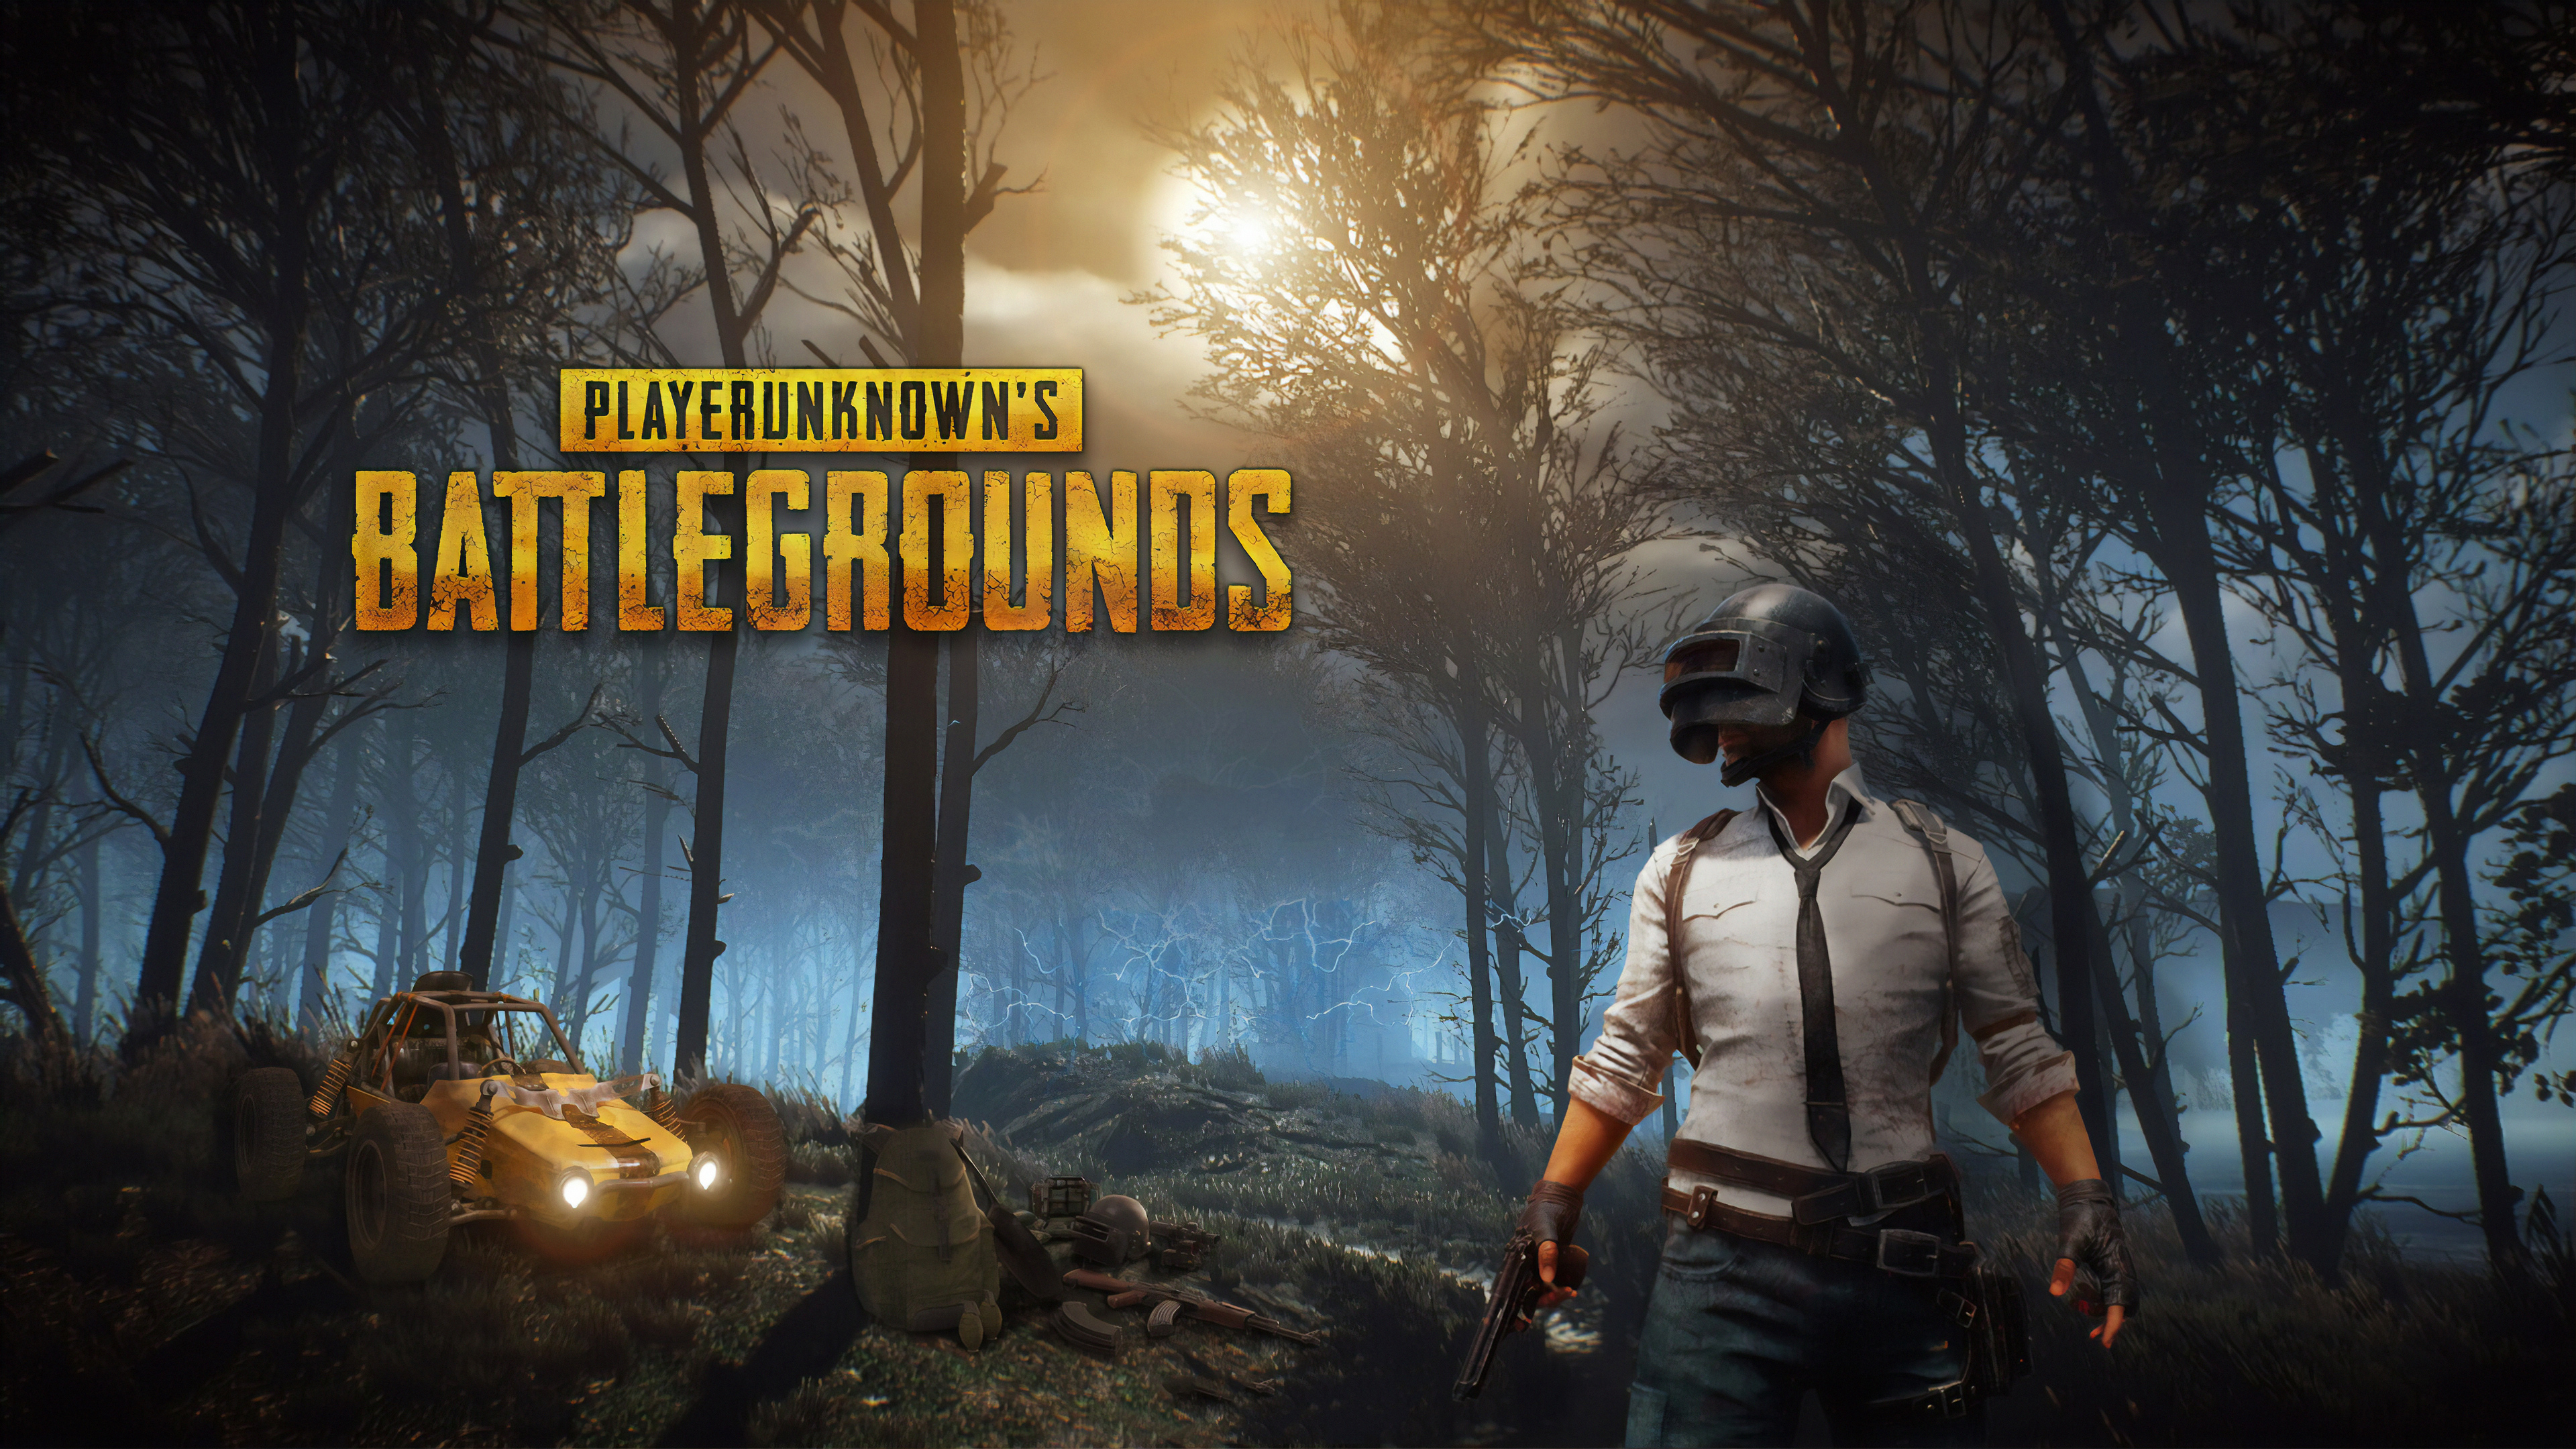 pubg 2019 new 1572369892 - Pubg 2019 New - pubg wallpapers, playerunknowns battlegrounds wallpapers, hd-wallpapers, games wallpapers, 4k-wallpapers, 2018 games wallpapers